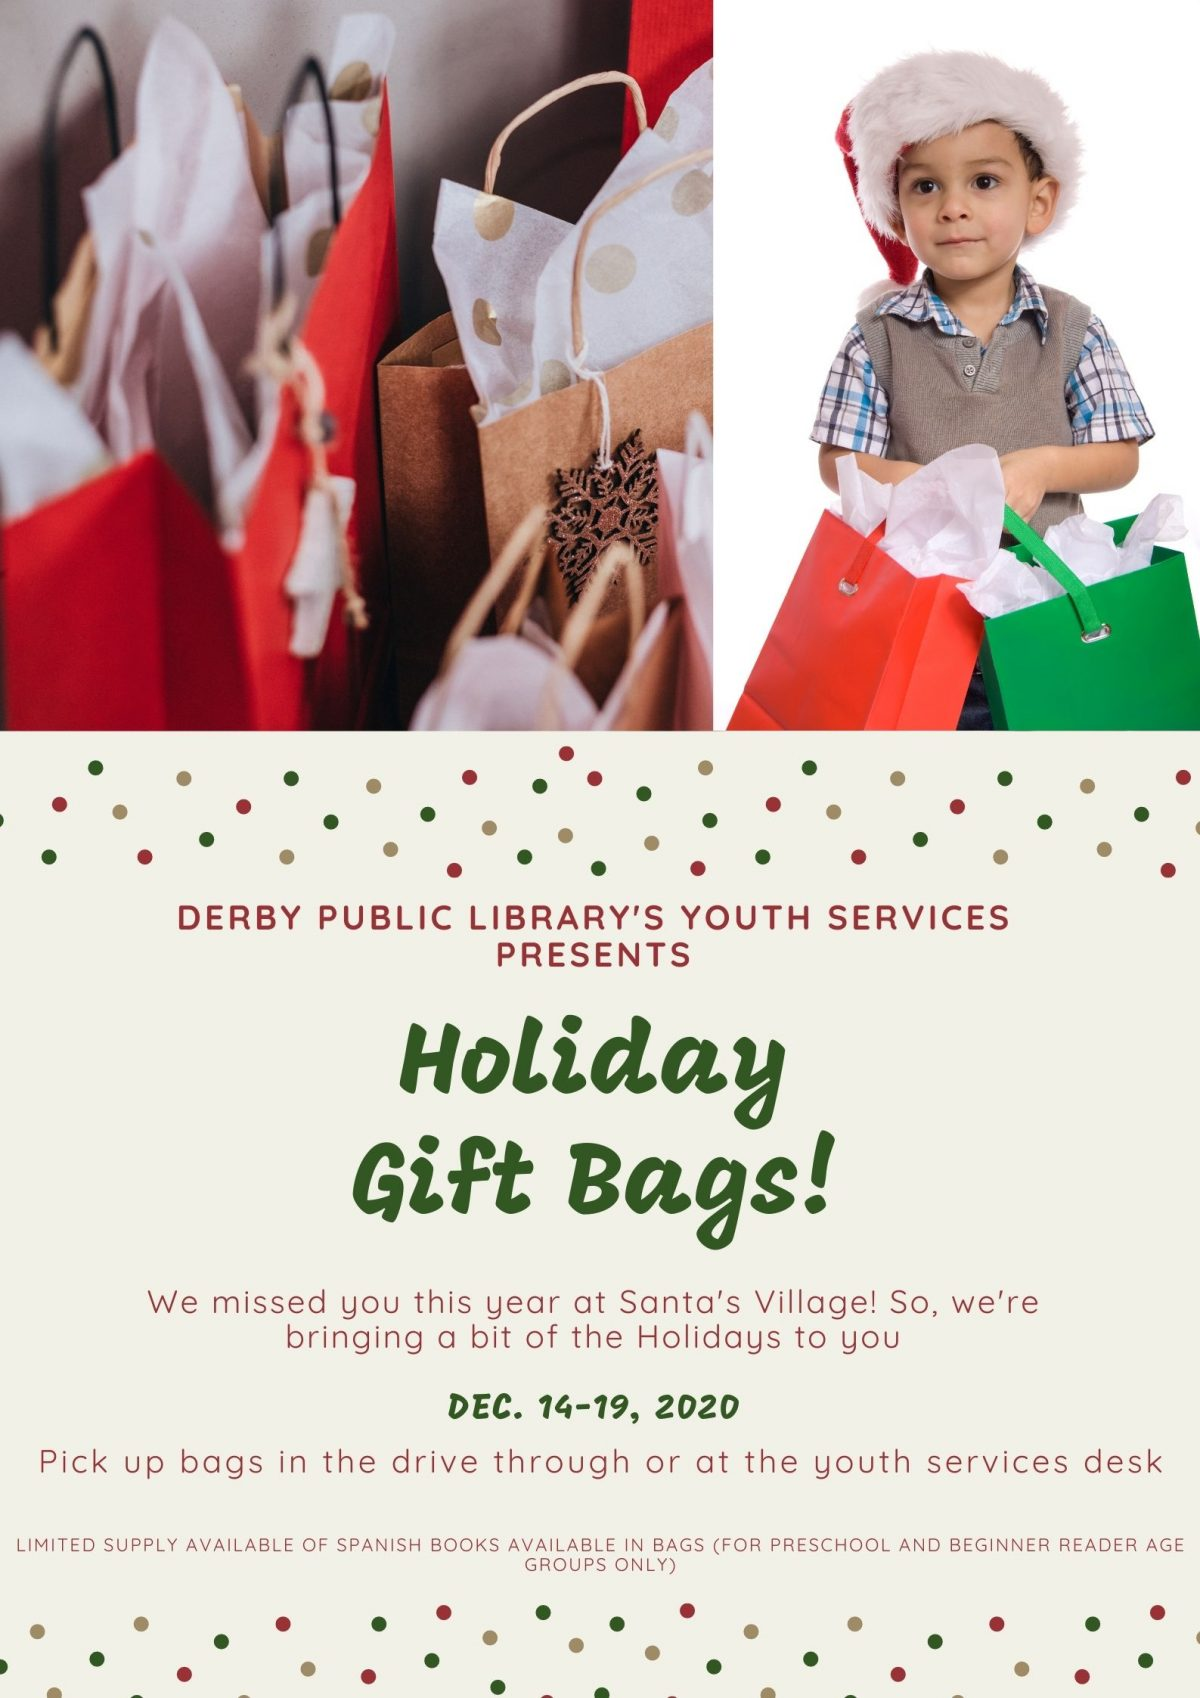 Holiday Bags for Children at the Library